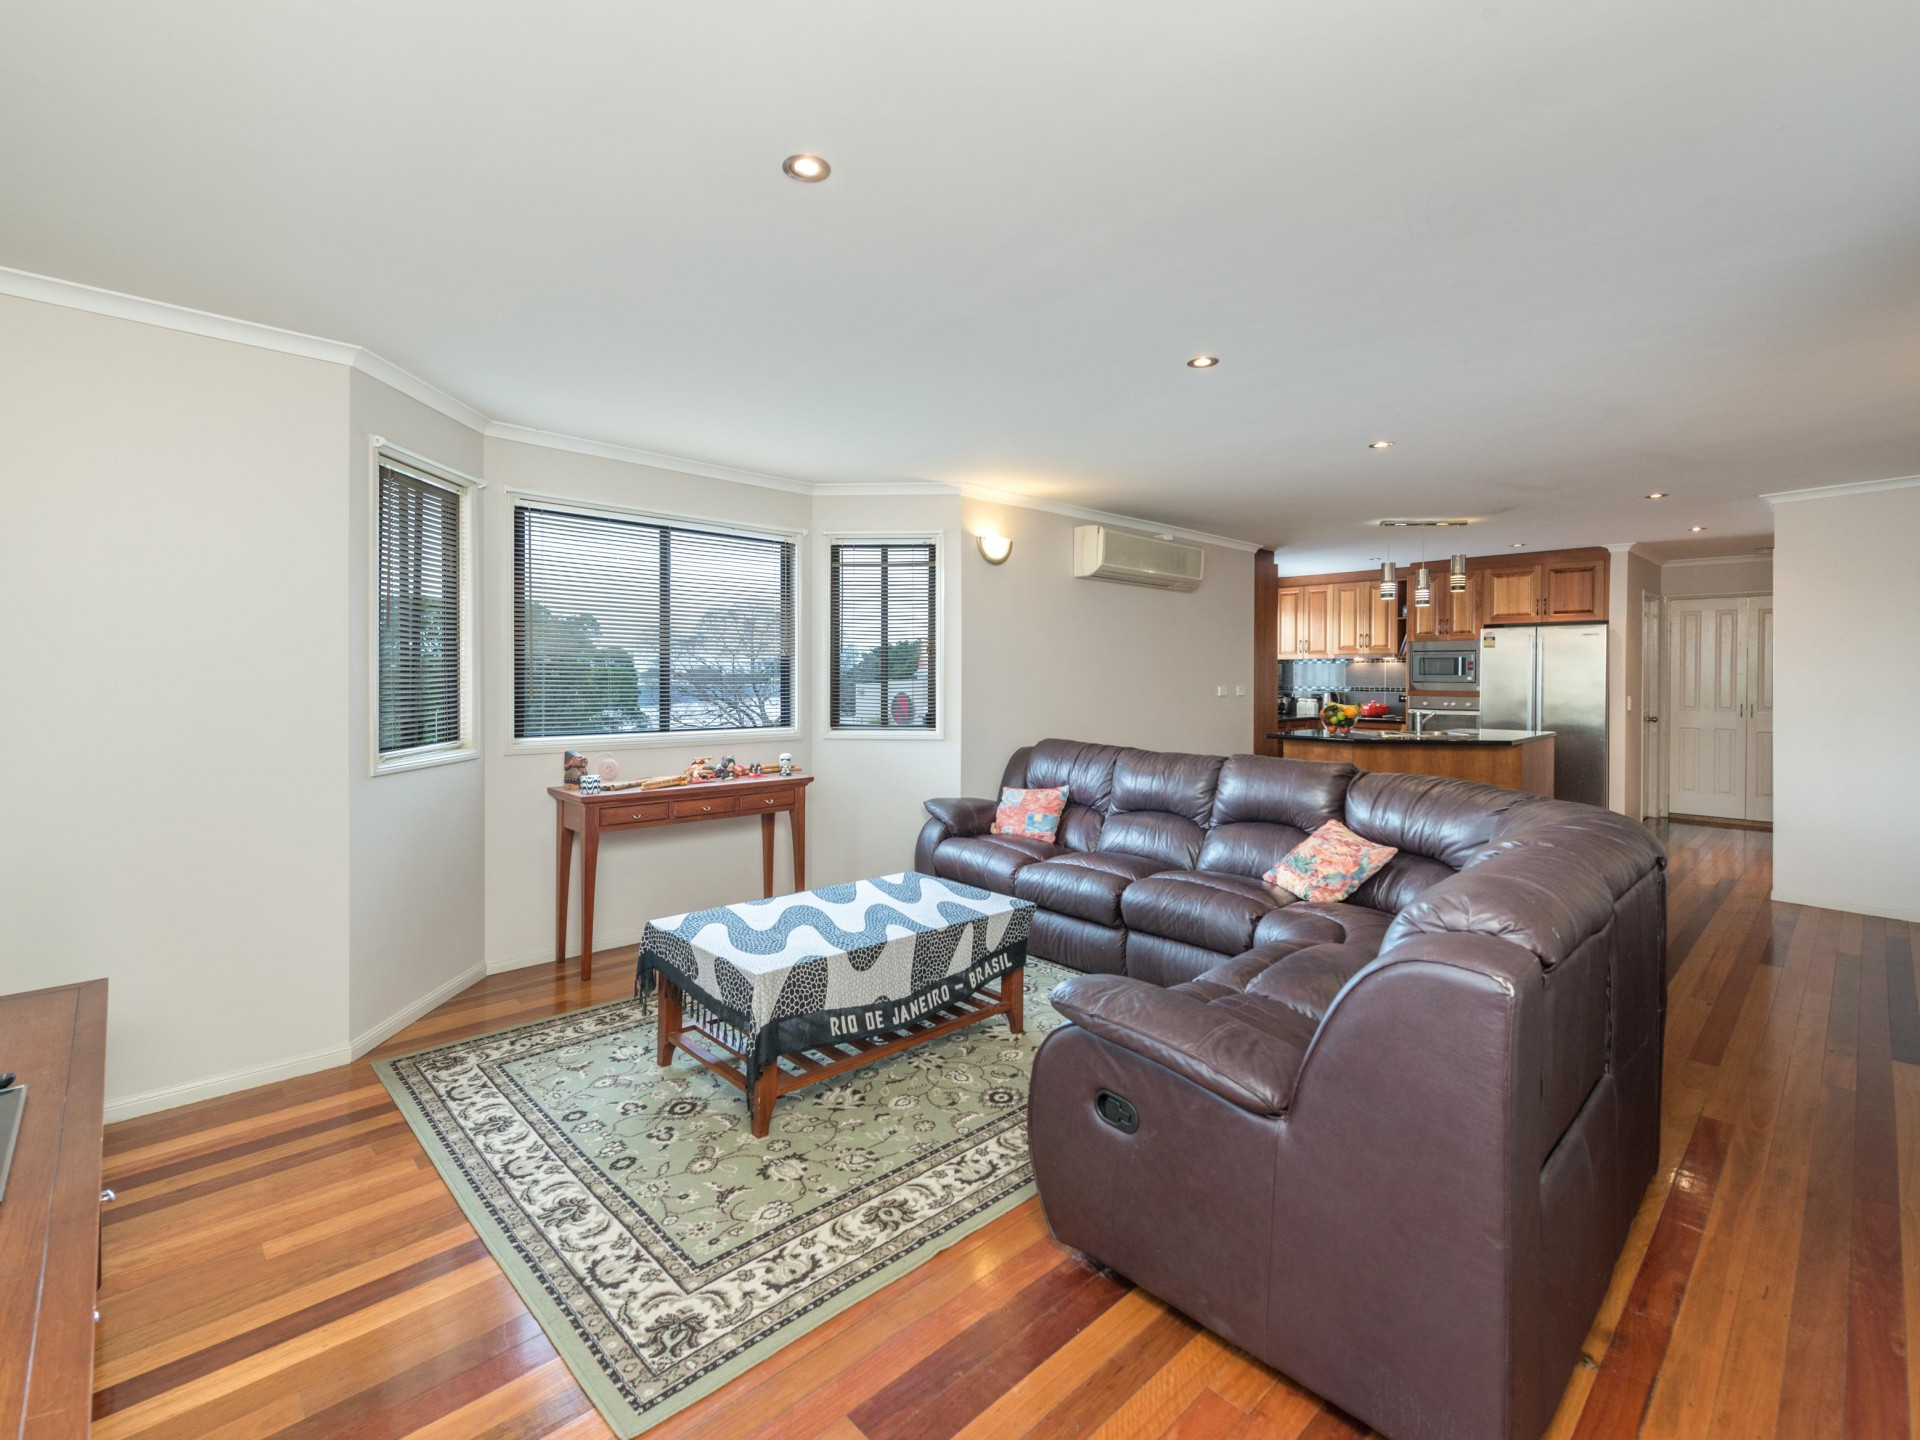 Fully Furnished - 2 Bedroom Apartment, Petrie Terrace ID 170